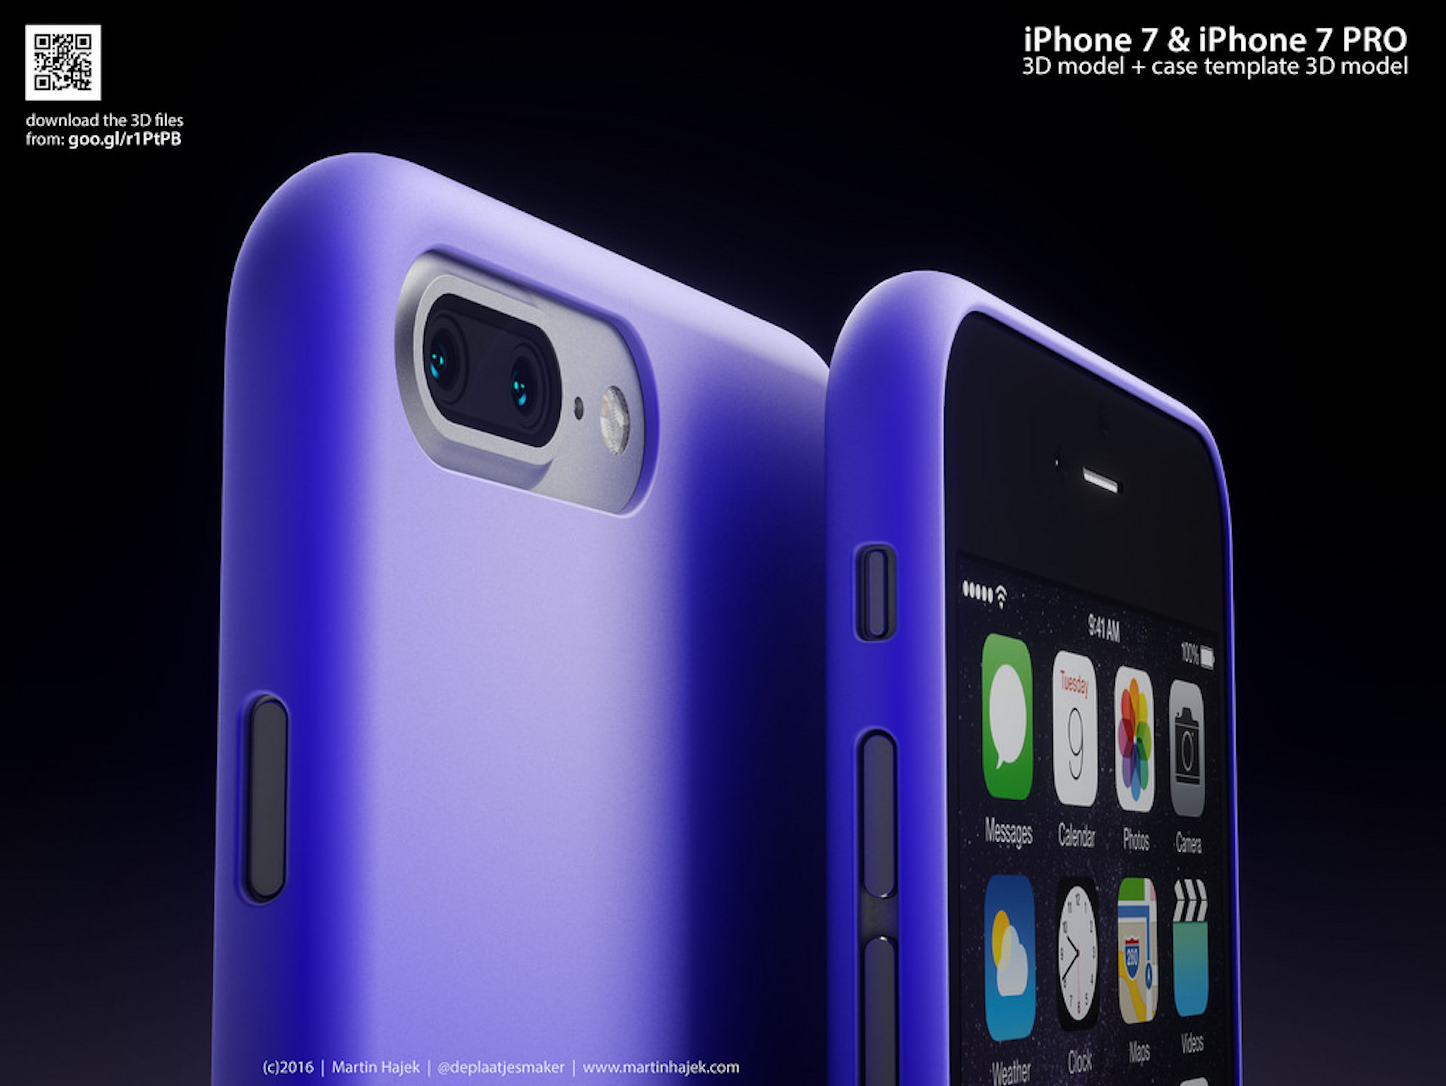 iphone-7-pro-concept-image-1.jpg